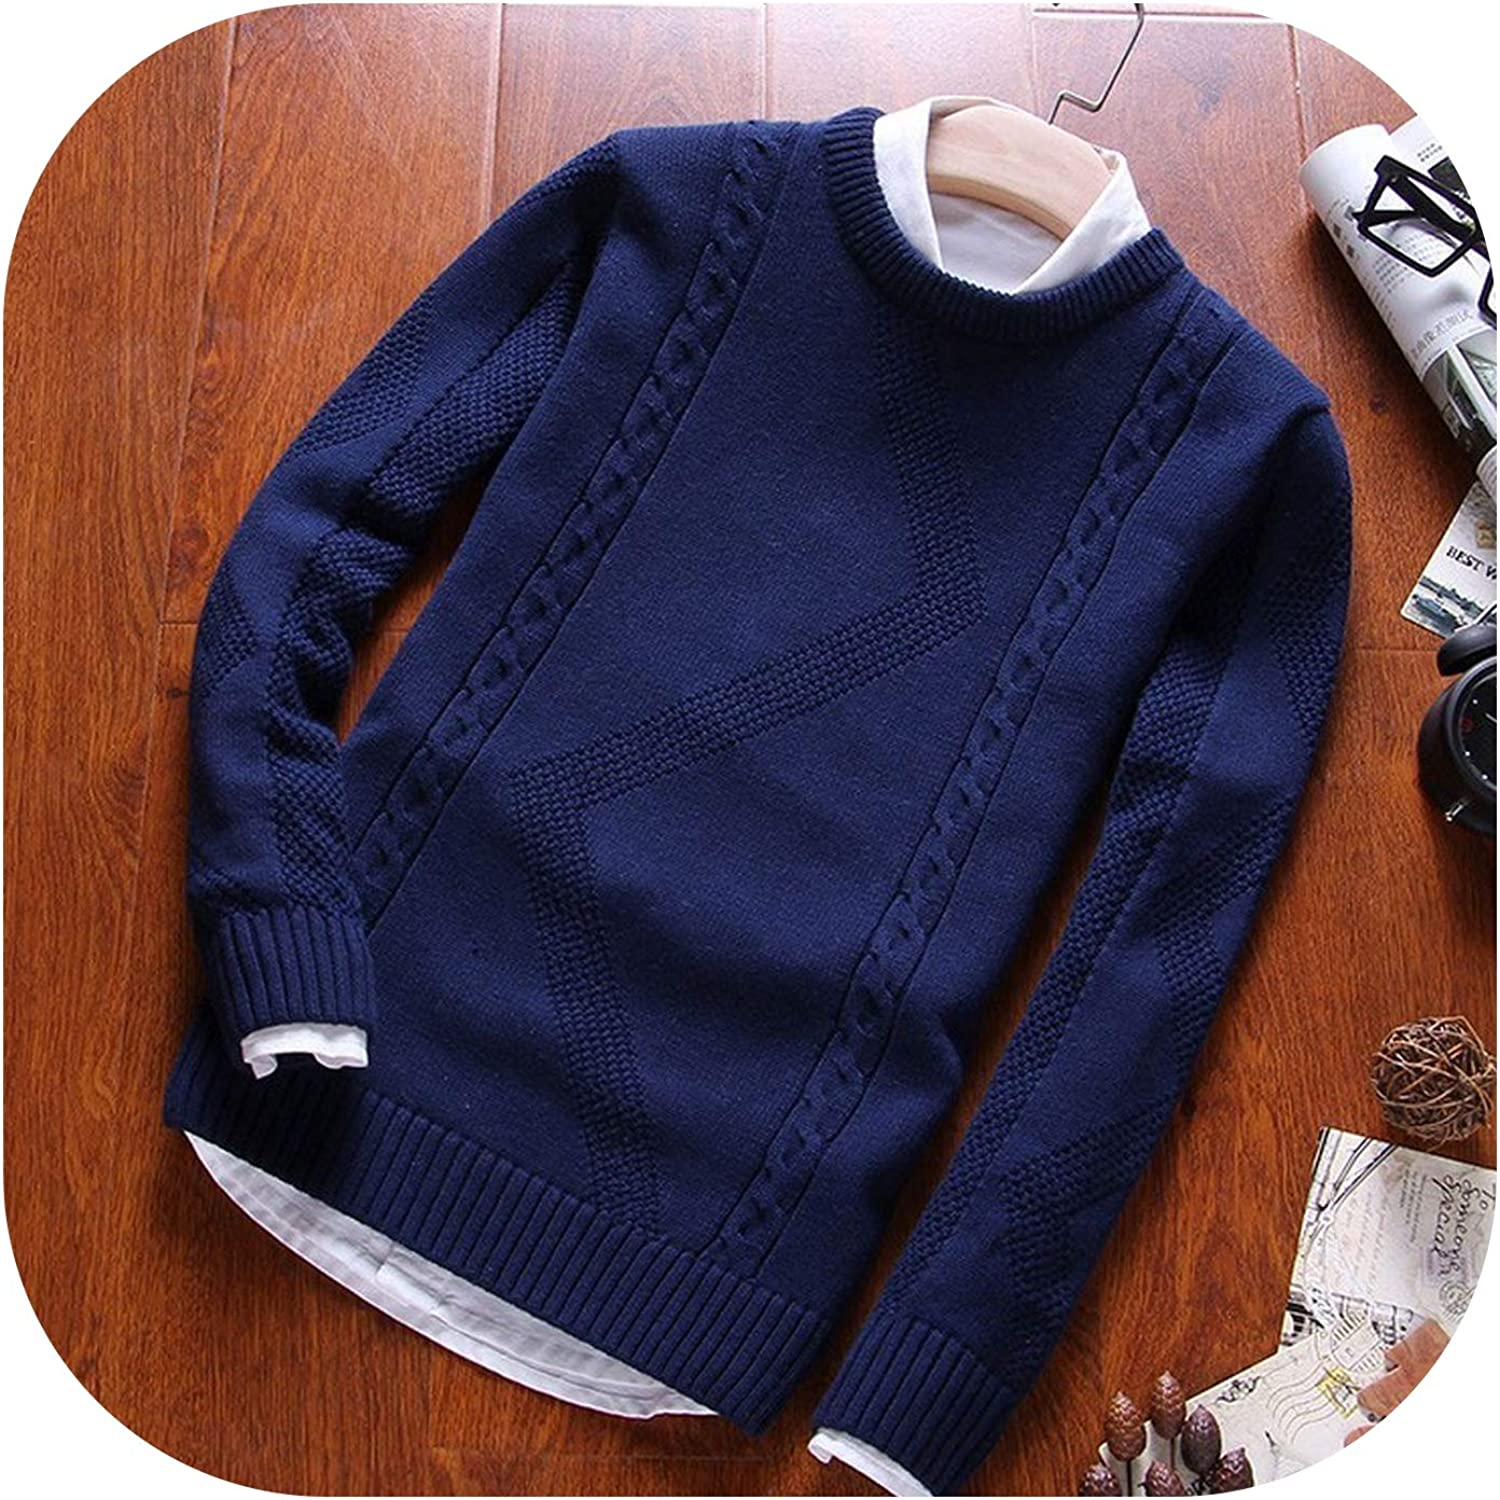 Mens Sweater Pullovers O Neck Cotton Knit Sweater Coat Winter Casual Long Sleeve Sweaters Homme Knitting Solid Tops